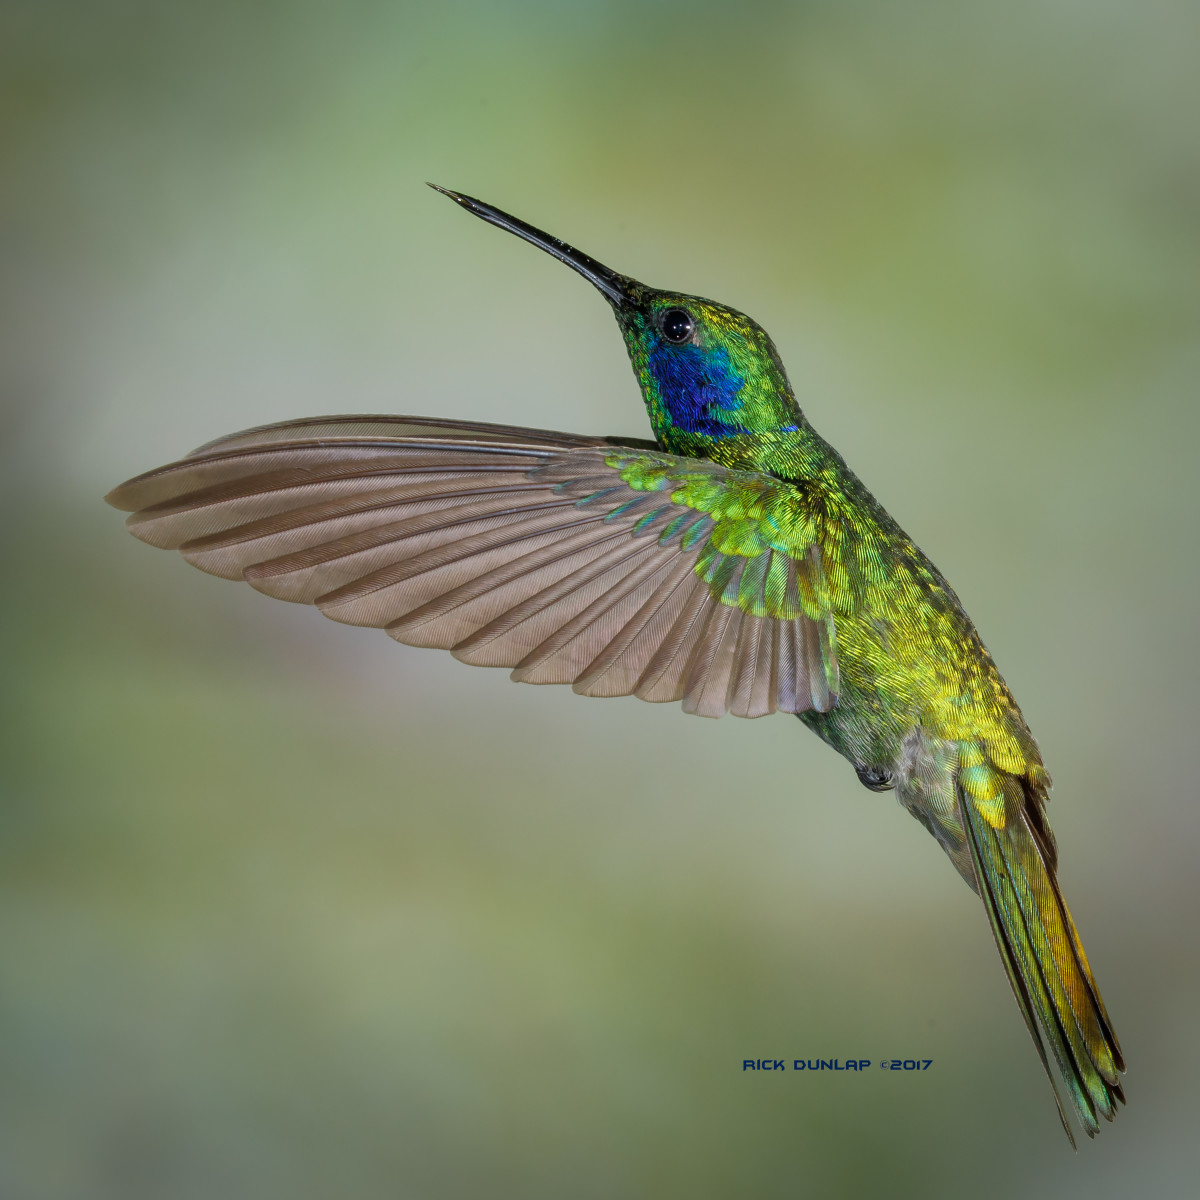 Lesser violet-ear hummingbird, taken in Ecuador.